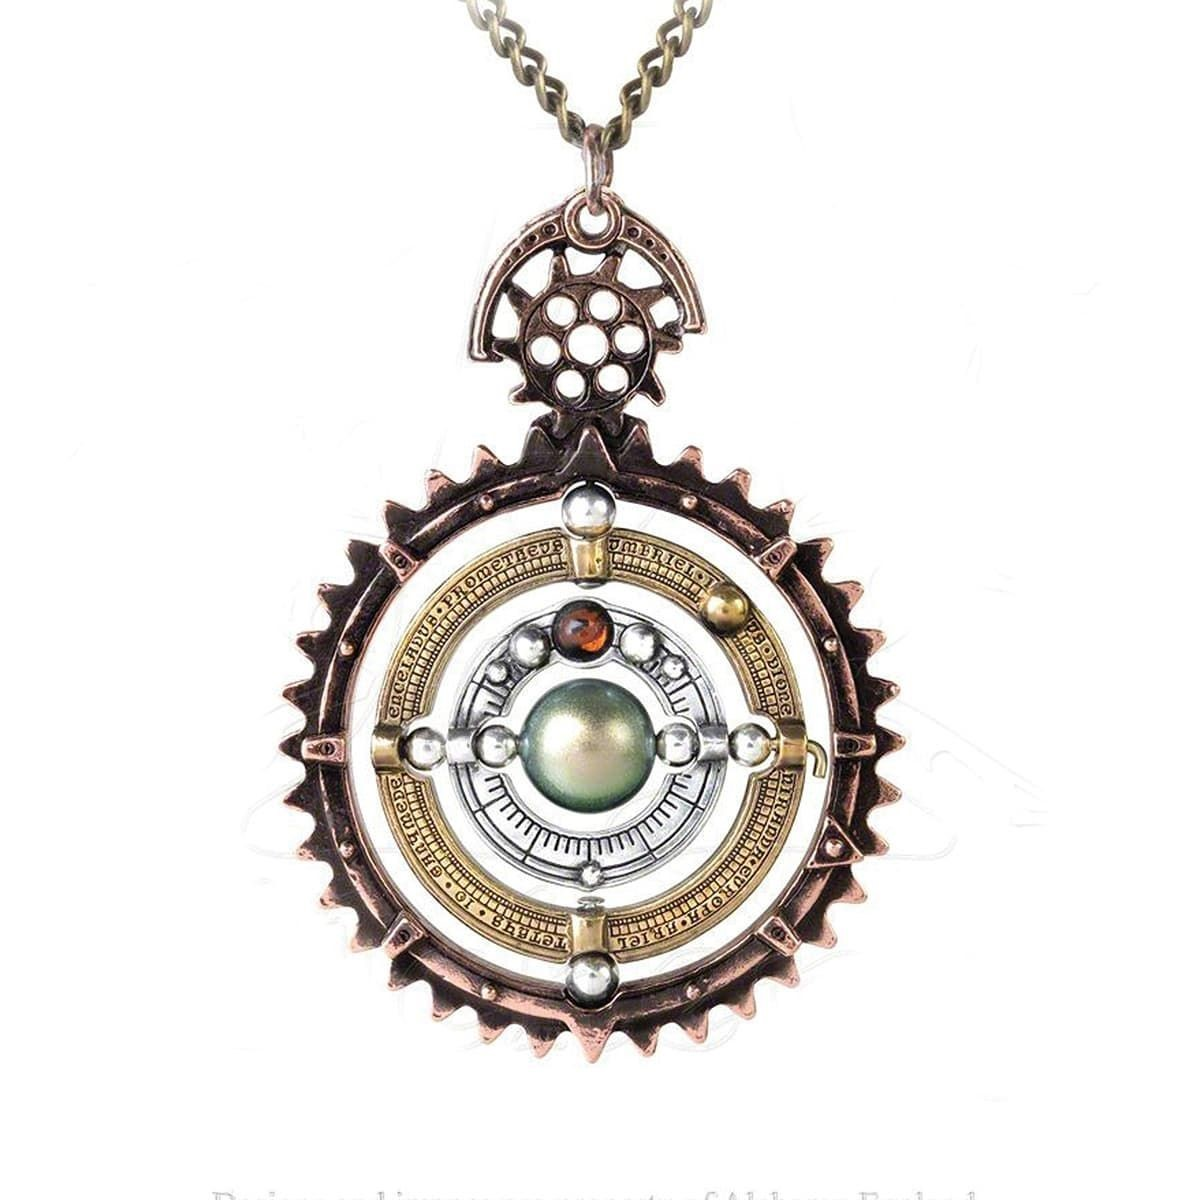 Copernicus Ordium Necklace from Alchemy